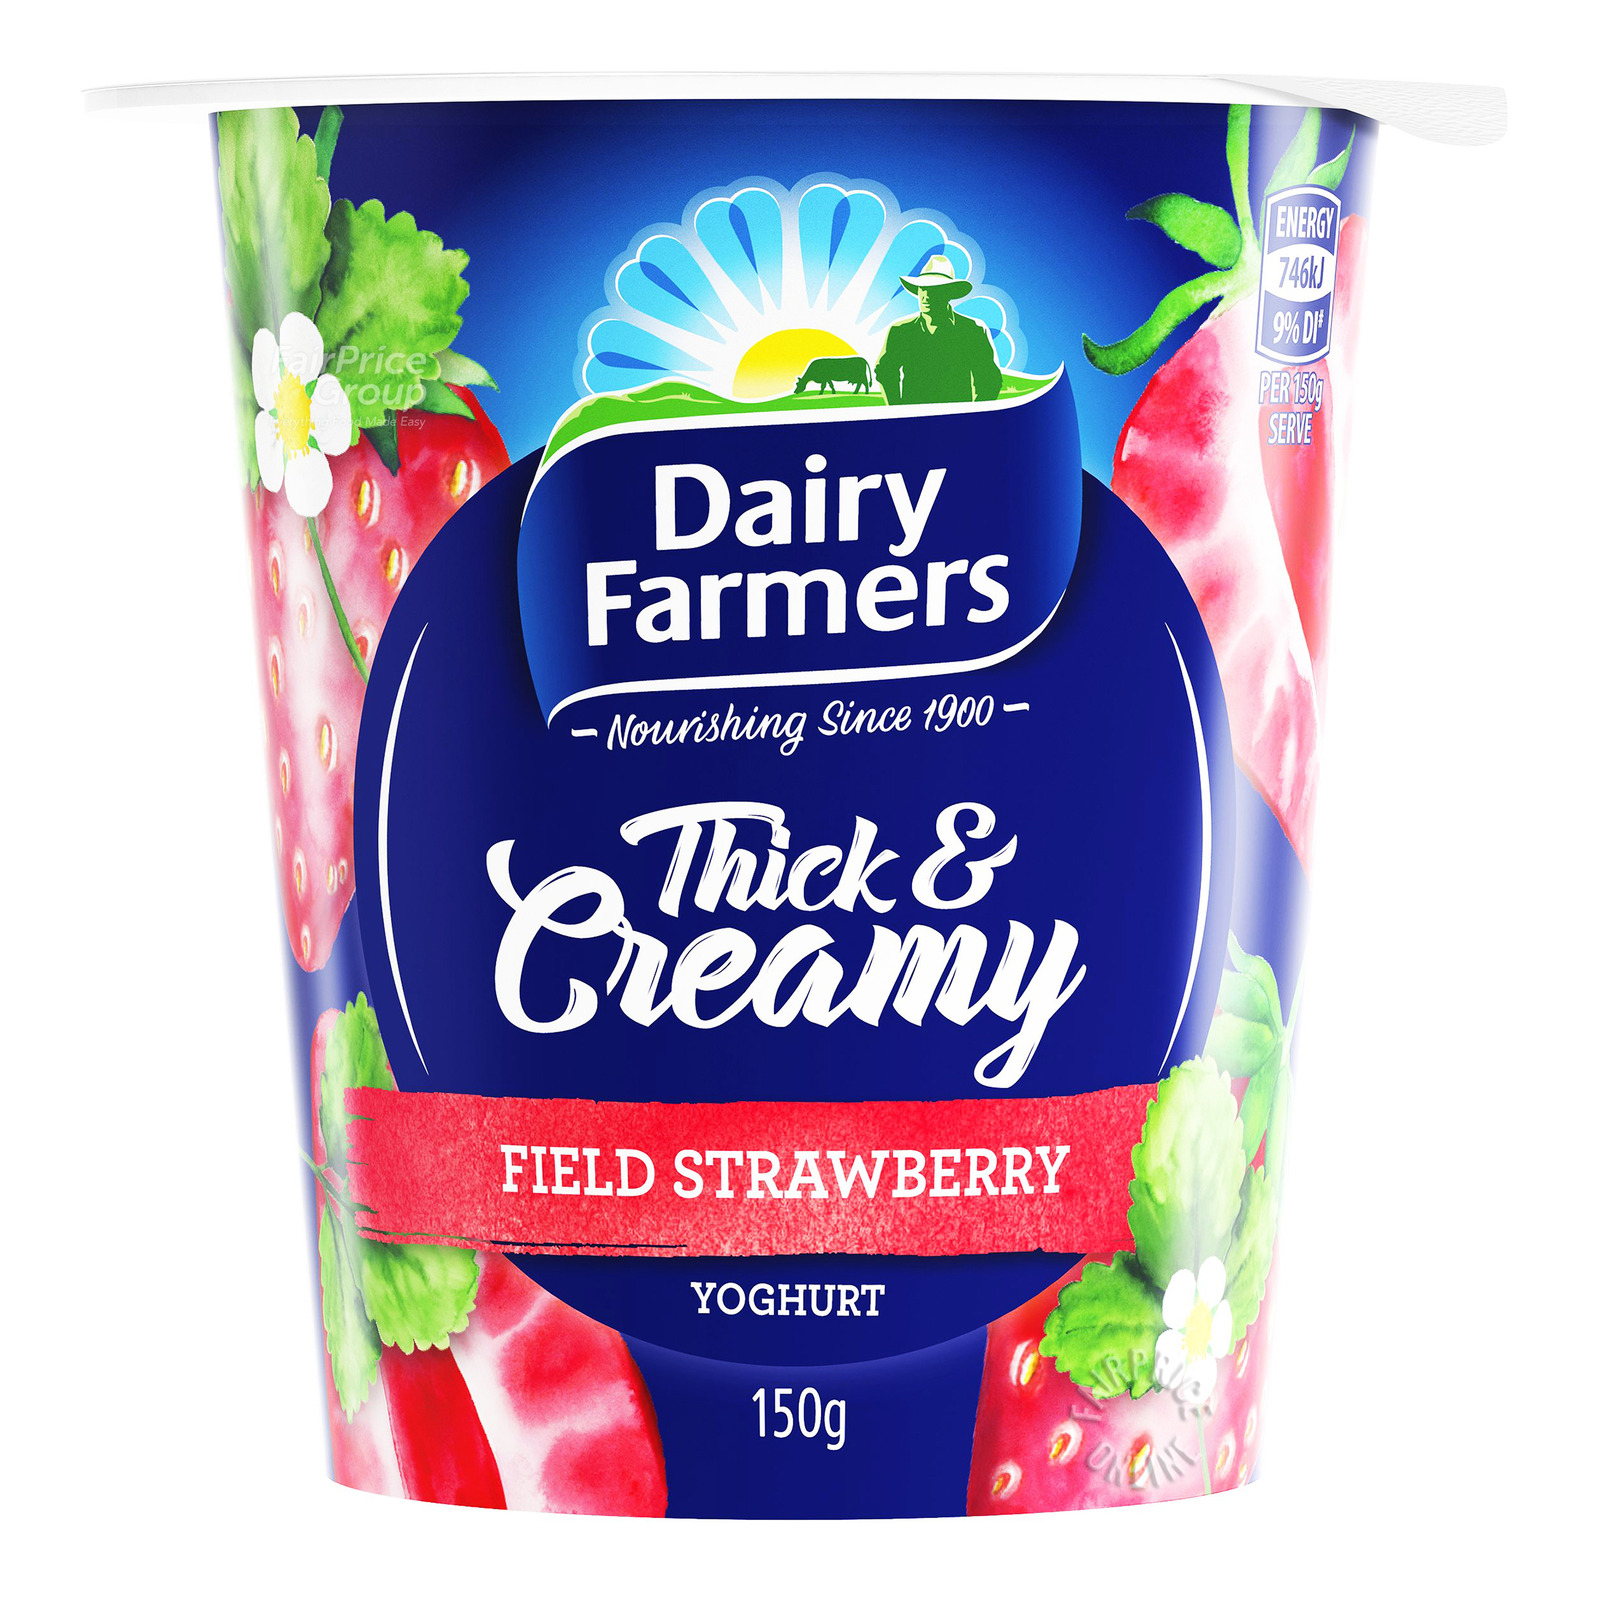 Dairy Farmers Thick & Creamy Yoghurt - Field Strawberries